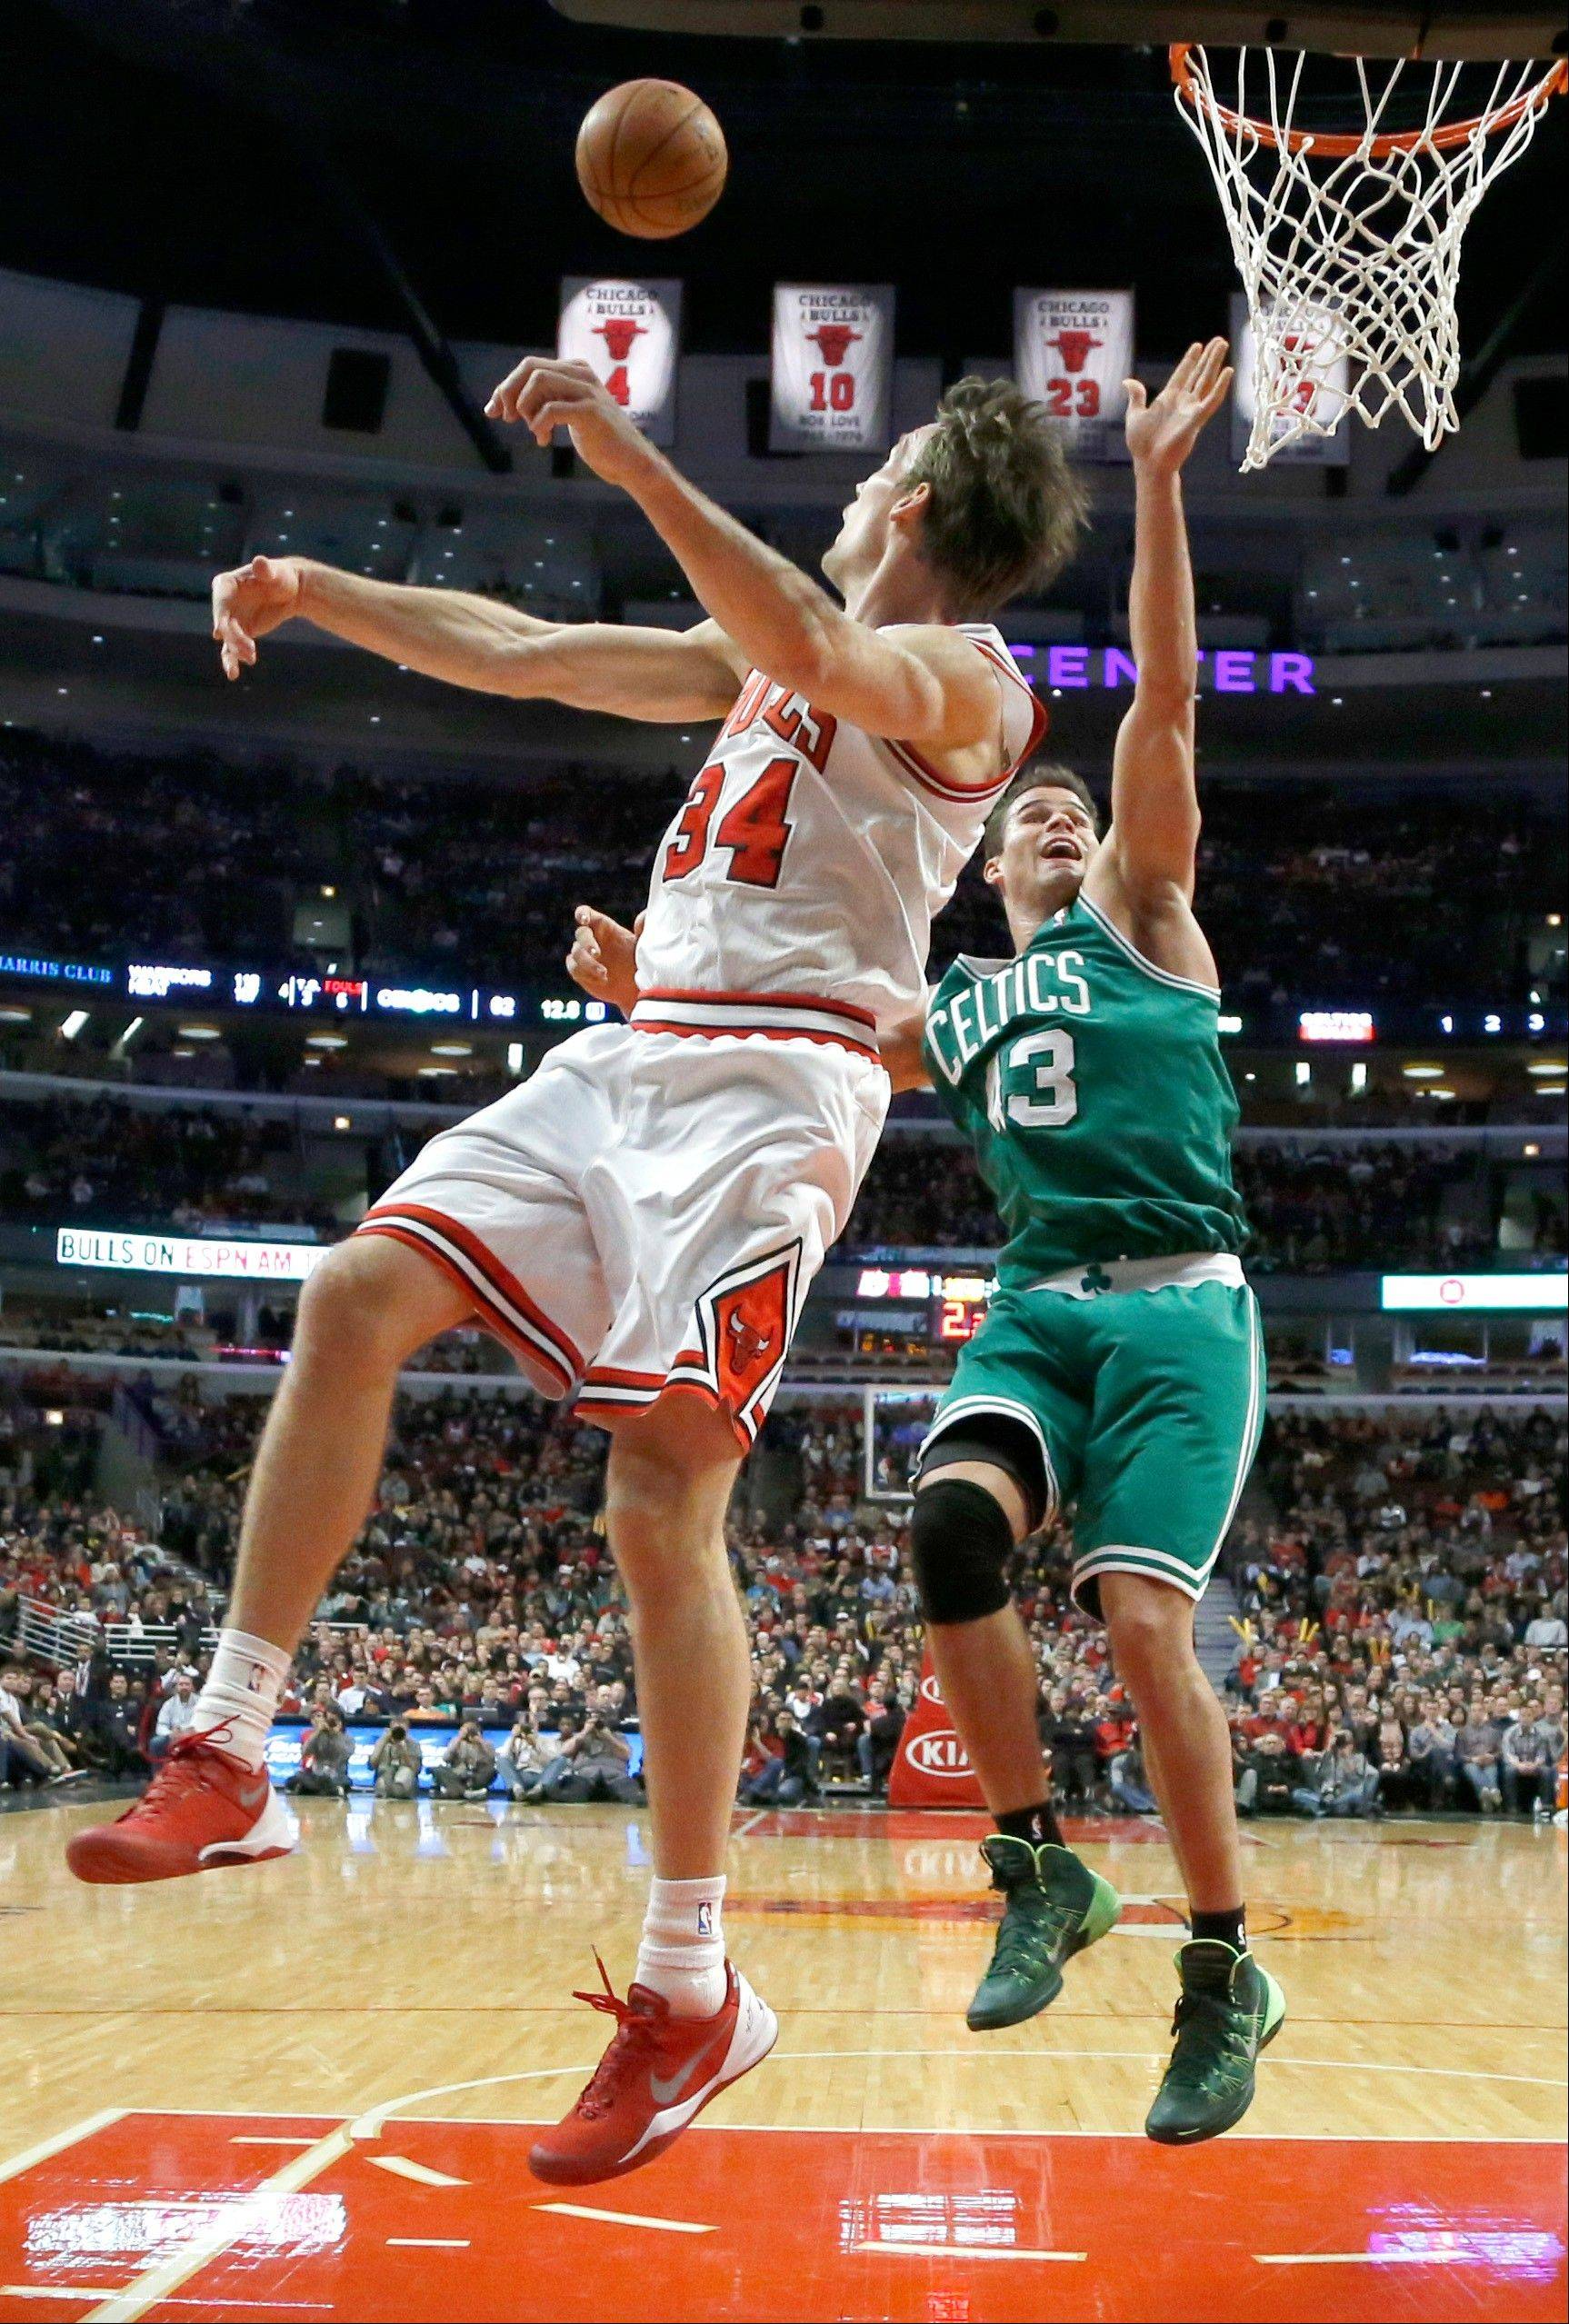 Chicago Bulls forward Mike Dunleavy (34) blocks the shot of Boston Celtics forward Kris Humphries (43) during the second half of an NBA basketball game on Thursday, Jan. 2, 2014, in Chicago. The Bulls won 94-82.